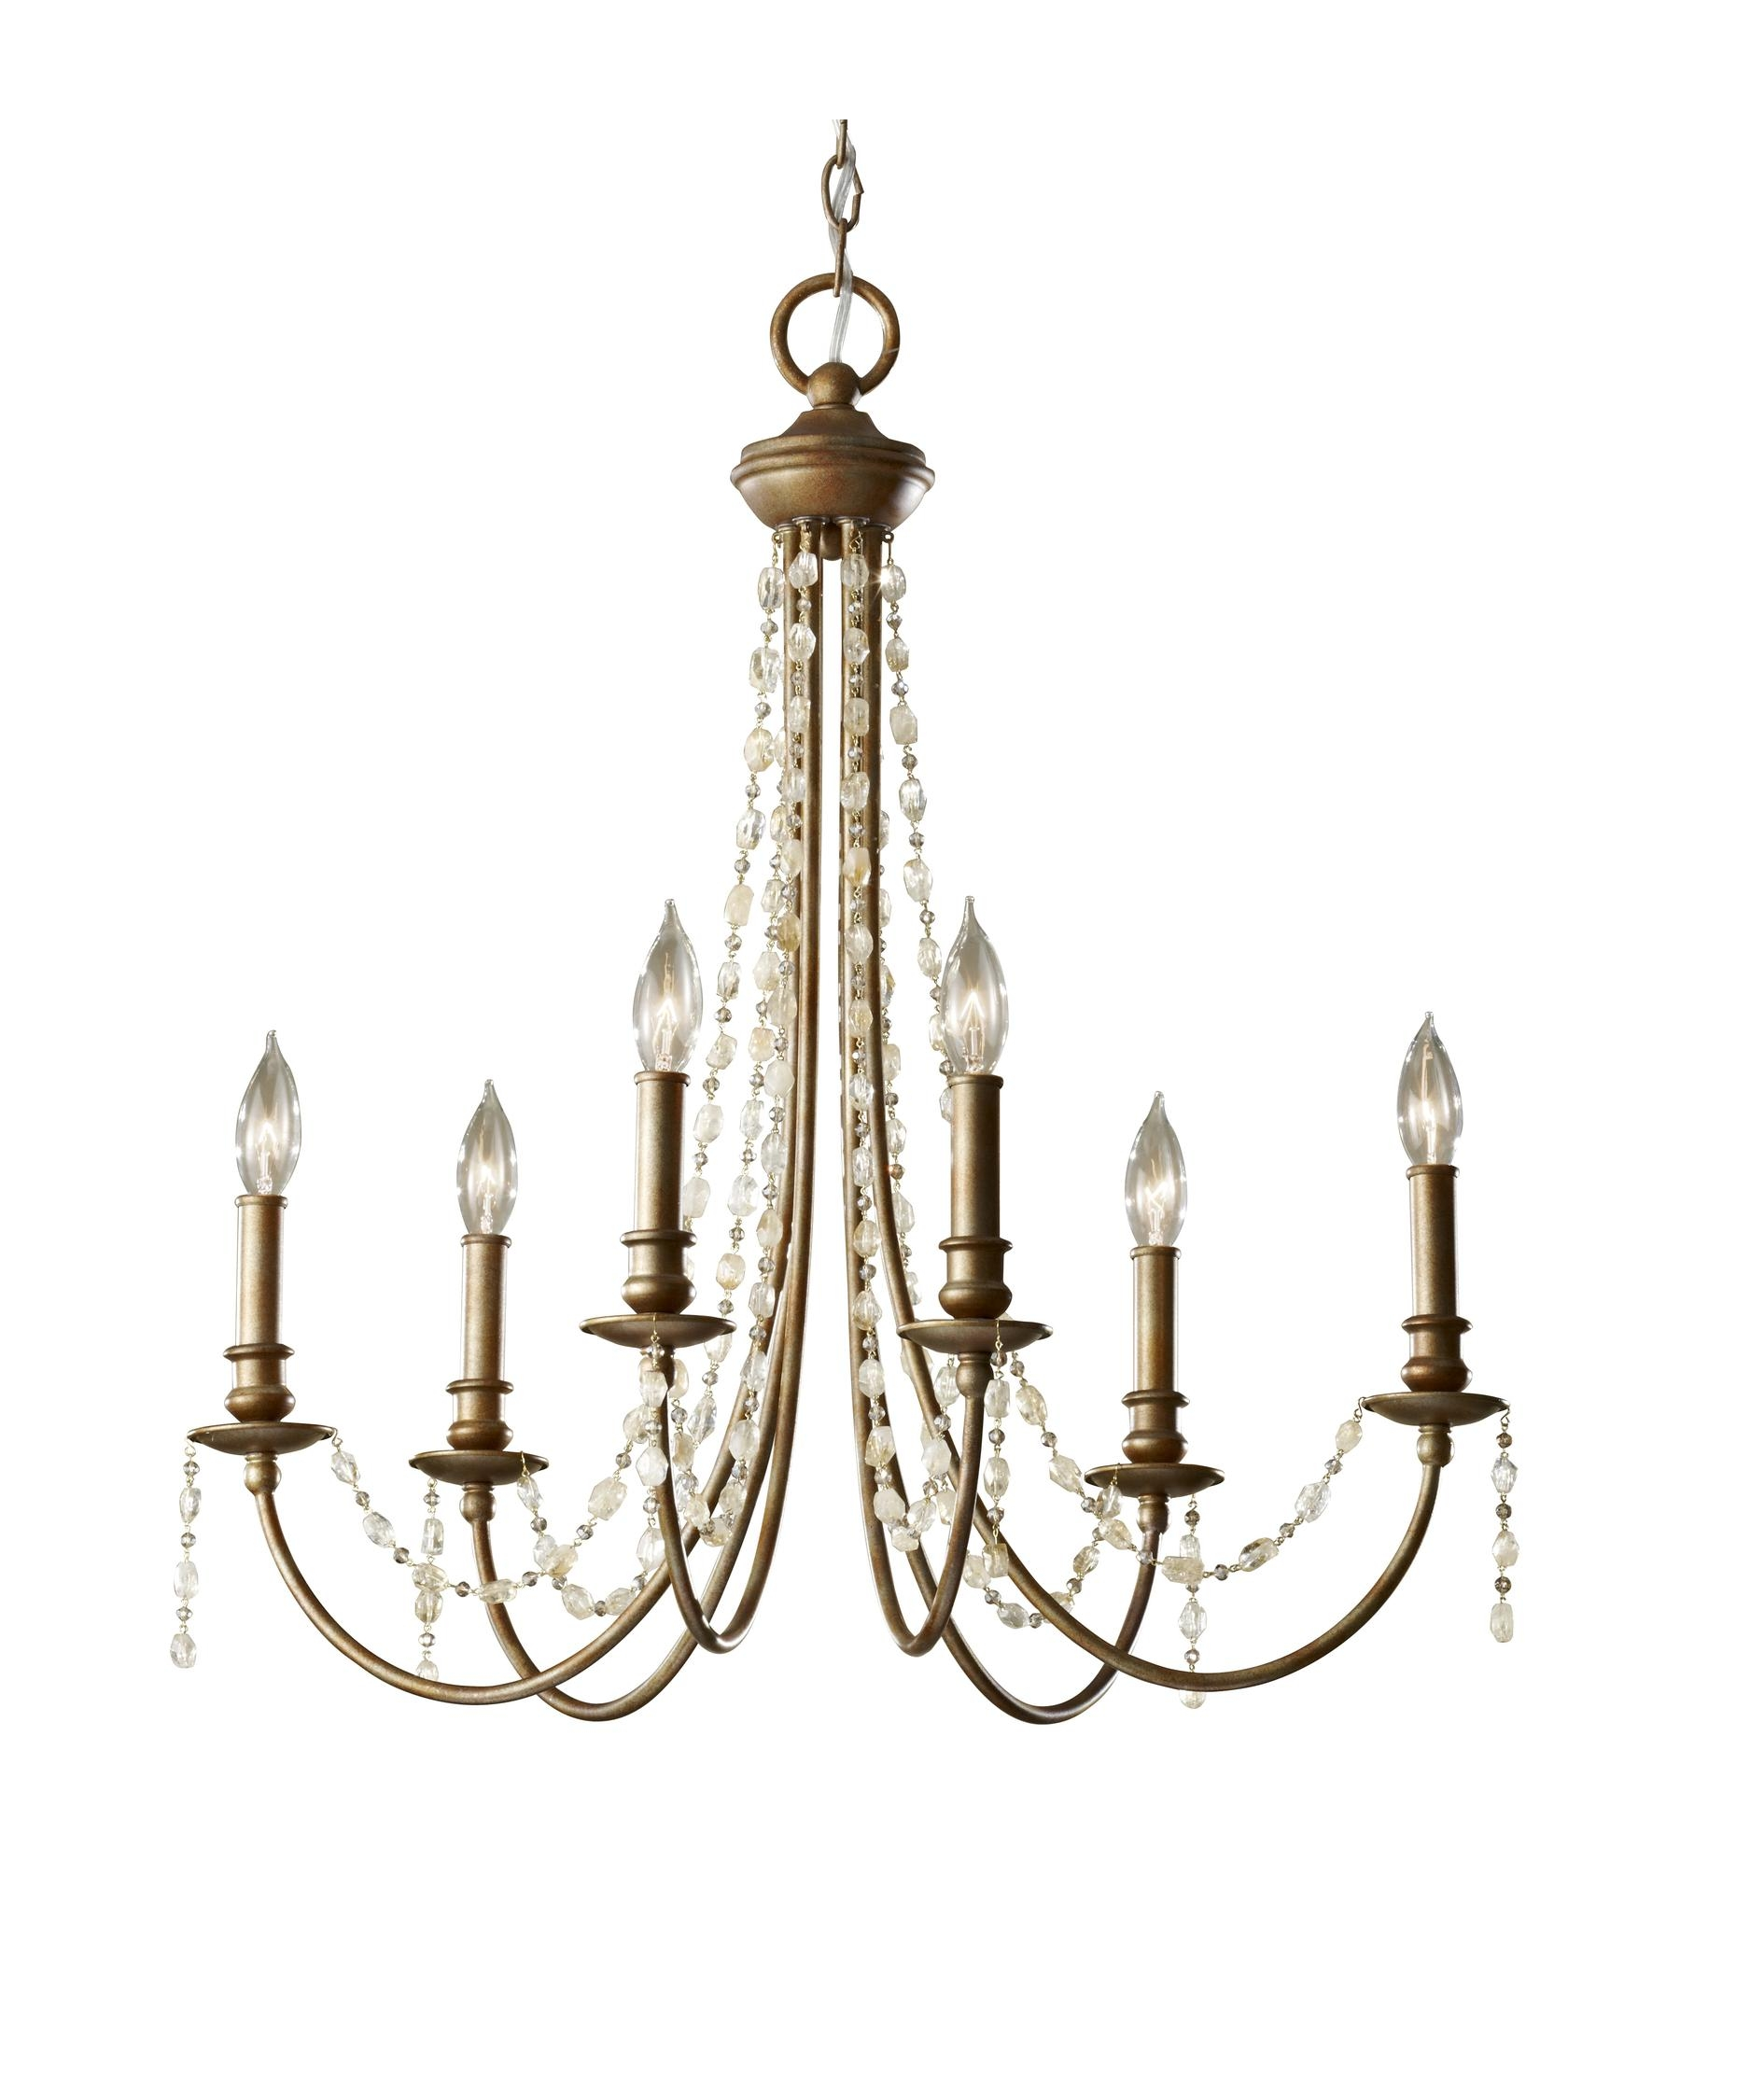 Murray Feiss F2712 6 Aura 27 Inch Wide 6 Light Chandelier Throughout Feiss Chandeliers (Image 21 of 25)